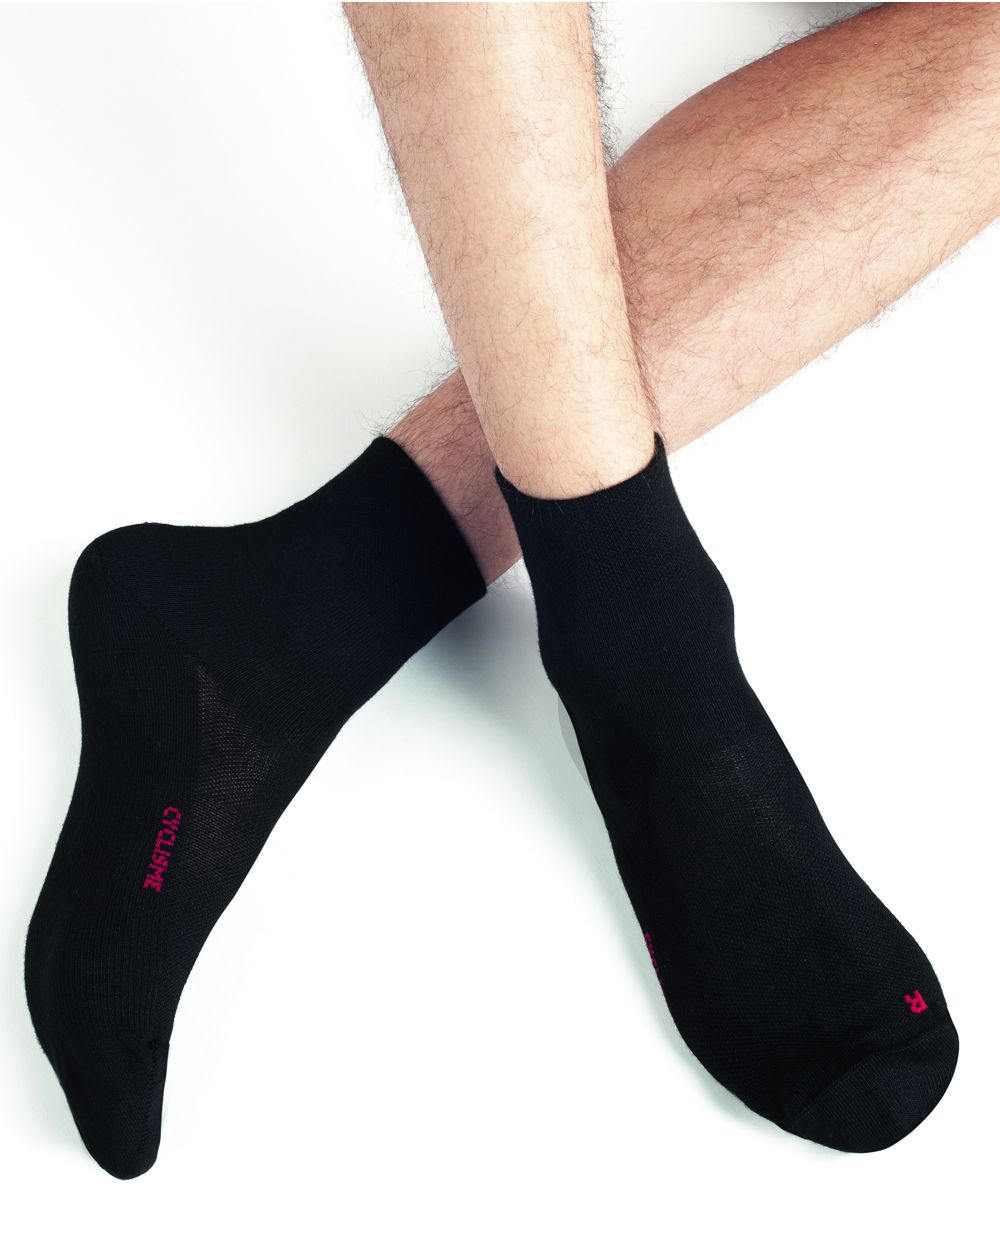 Cycling ankle socks